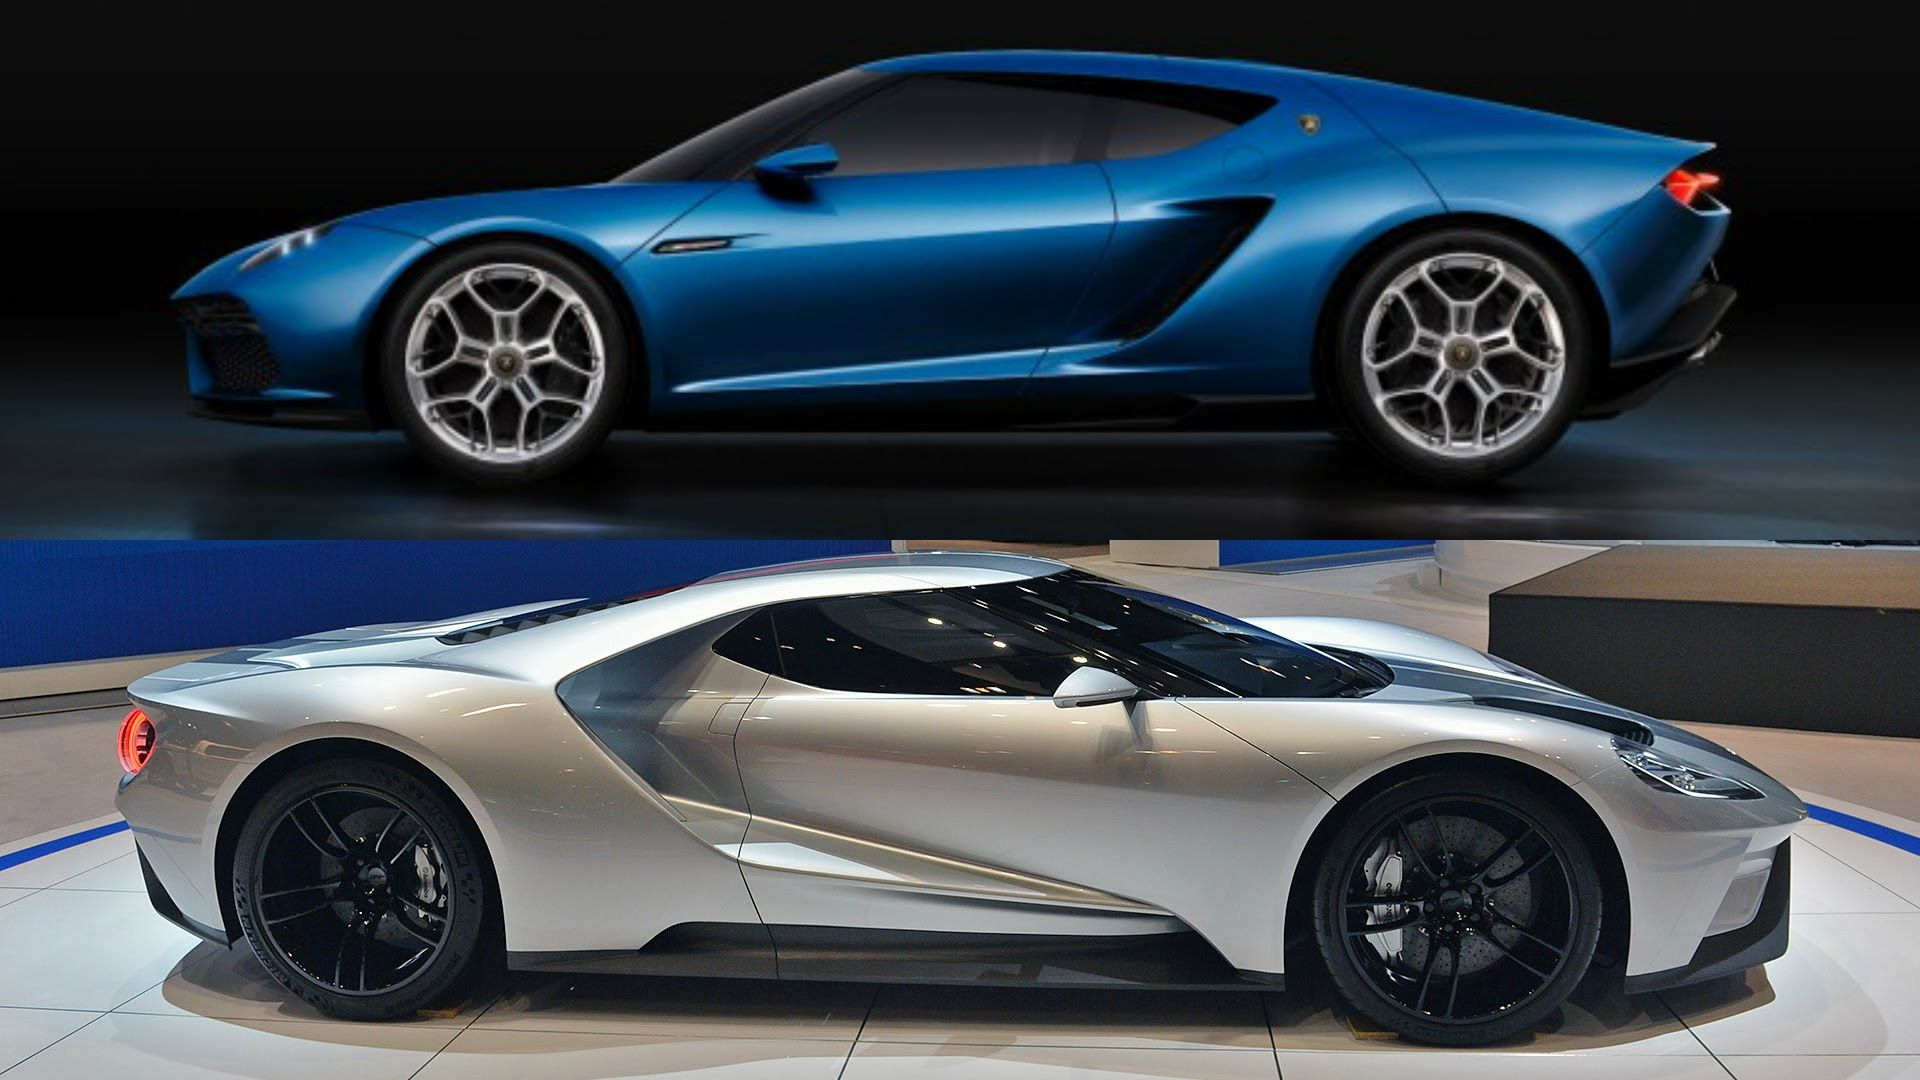 2019 Lamborghini Asterion Vs 2017 Ford Gt Youtube Ford Gt